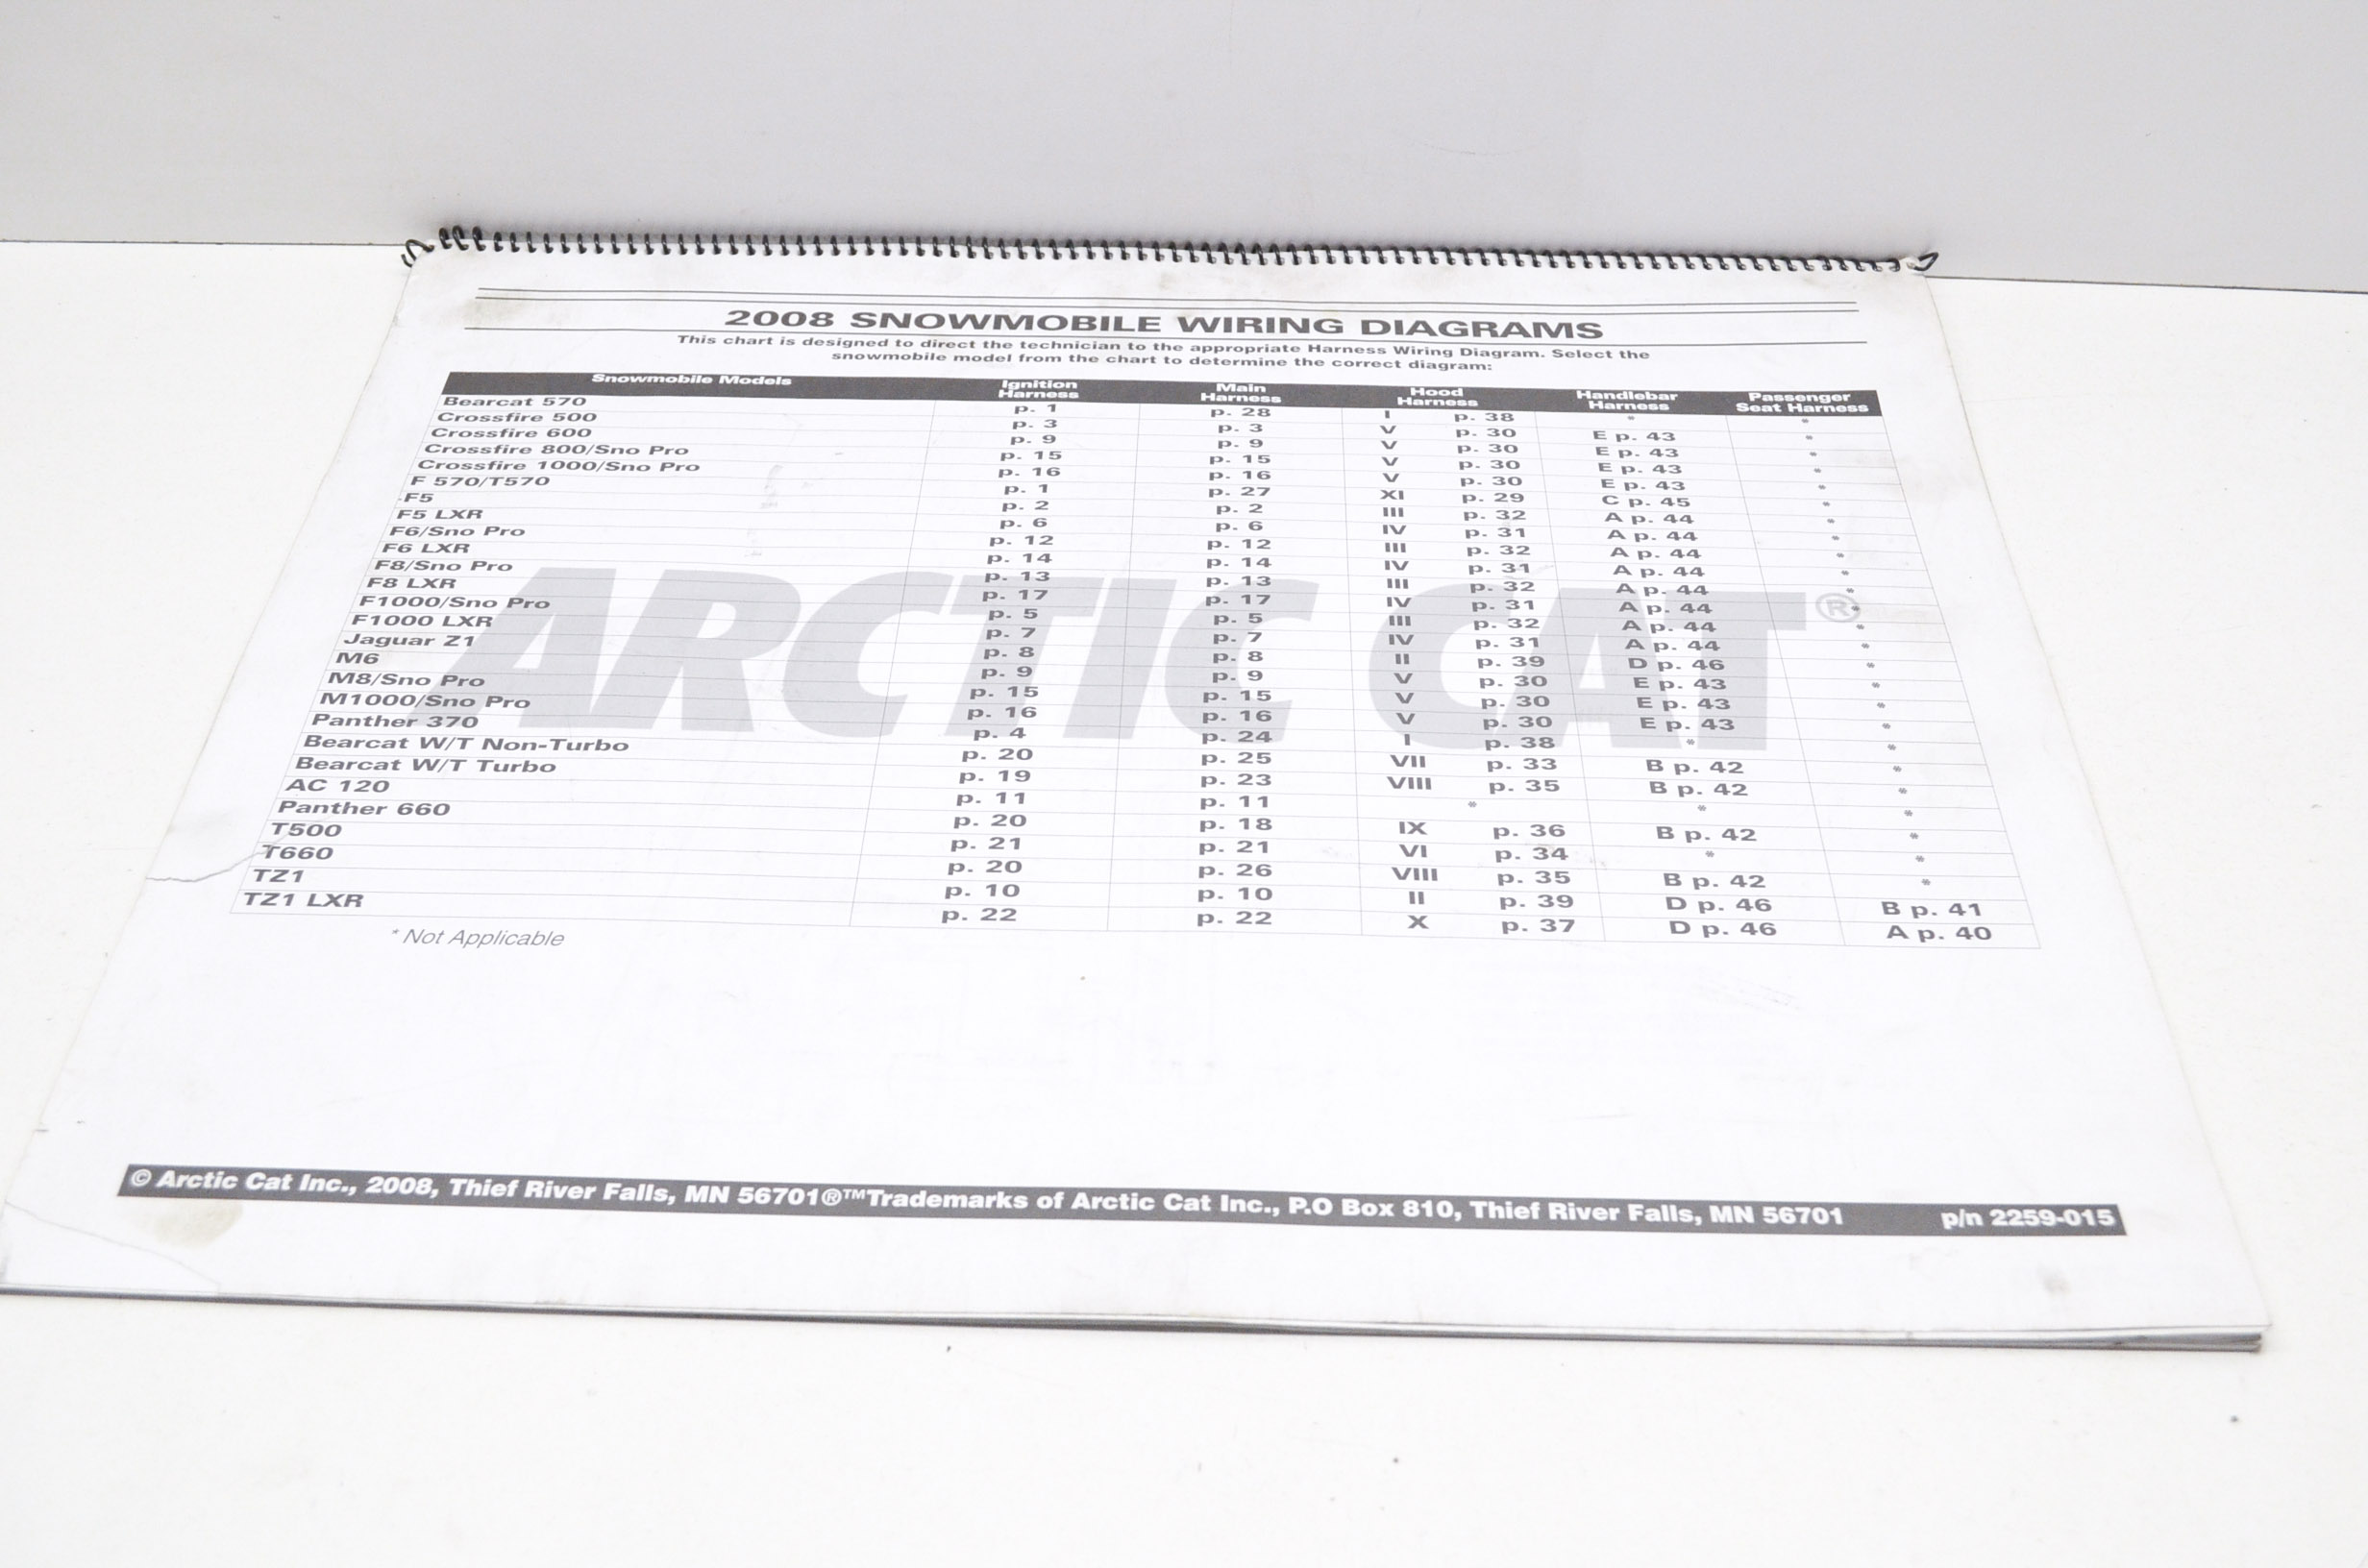 arctic cat 2259 015 2008 snowmobile wiring diagrams qty 1 walmart comarctic cat snowmobile wiring diagrams [ 2464 x 1632 Pixel ]